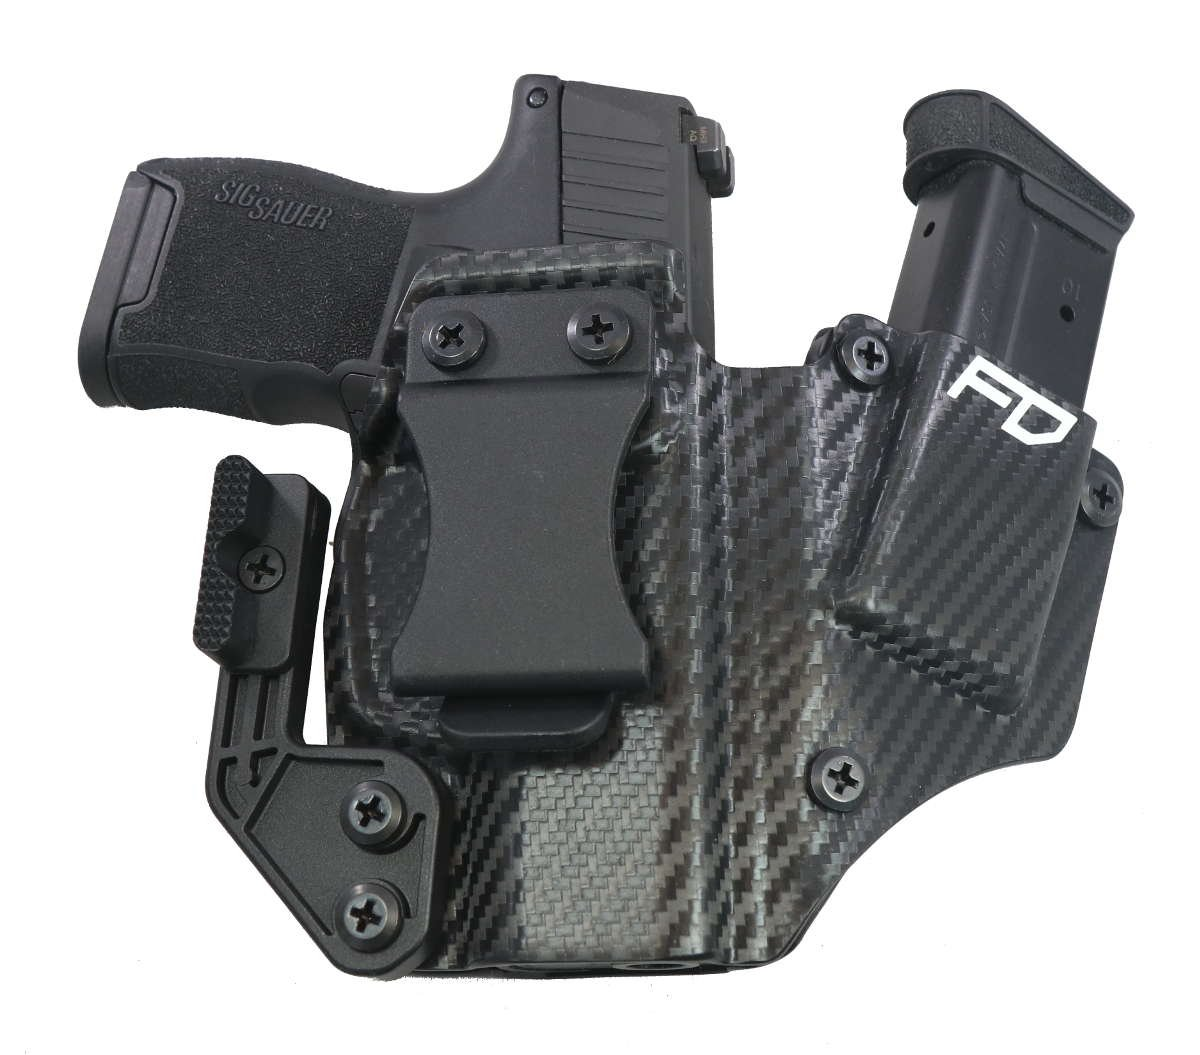 Fierce Defender IWB Kydex Holster Sig P365 +1 Series W/Claw -Made in USA-